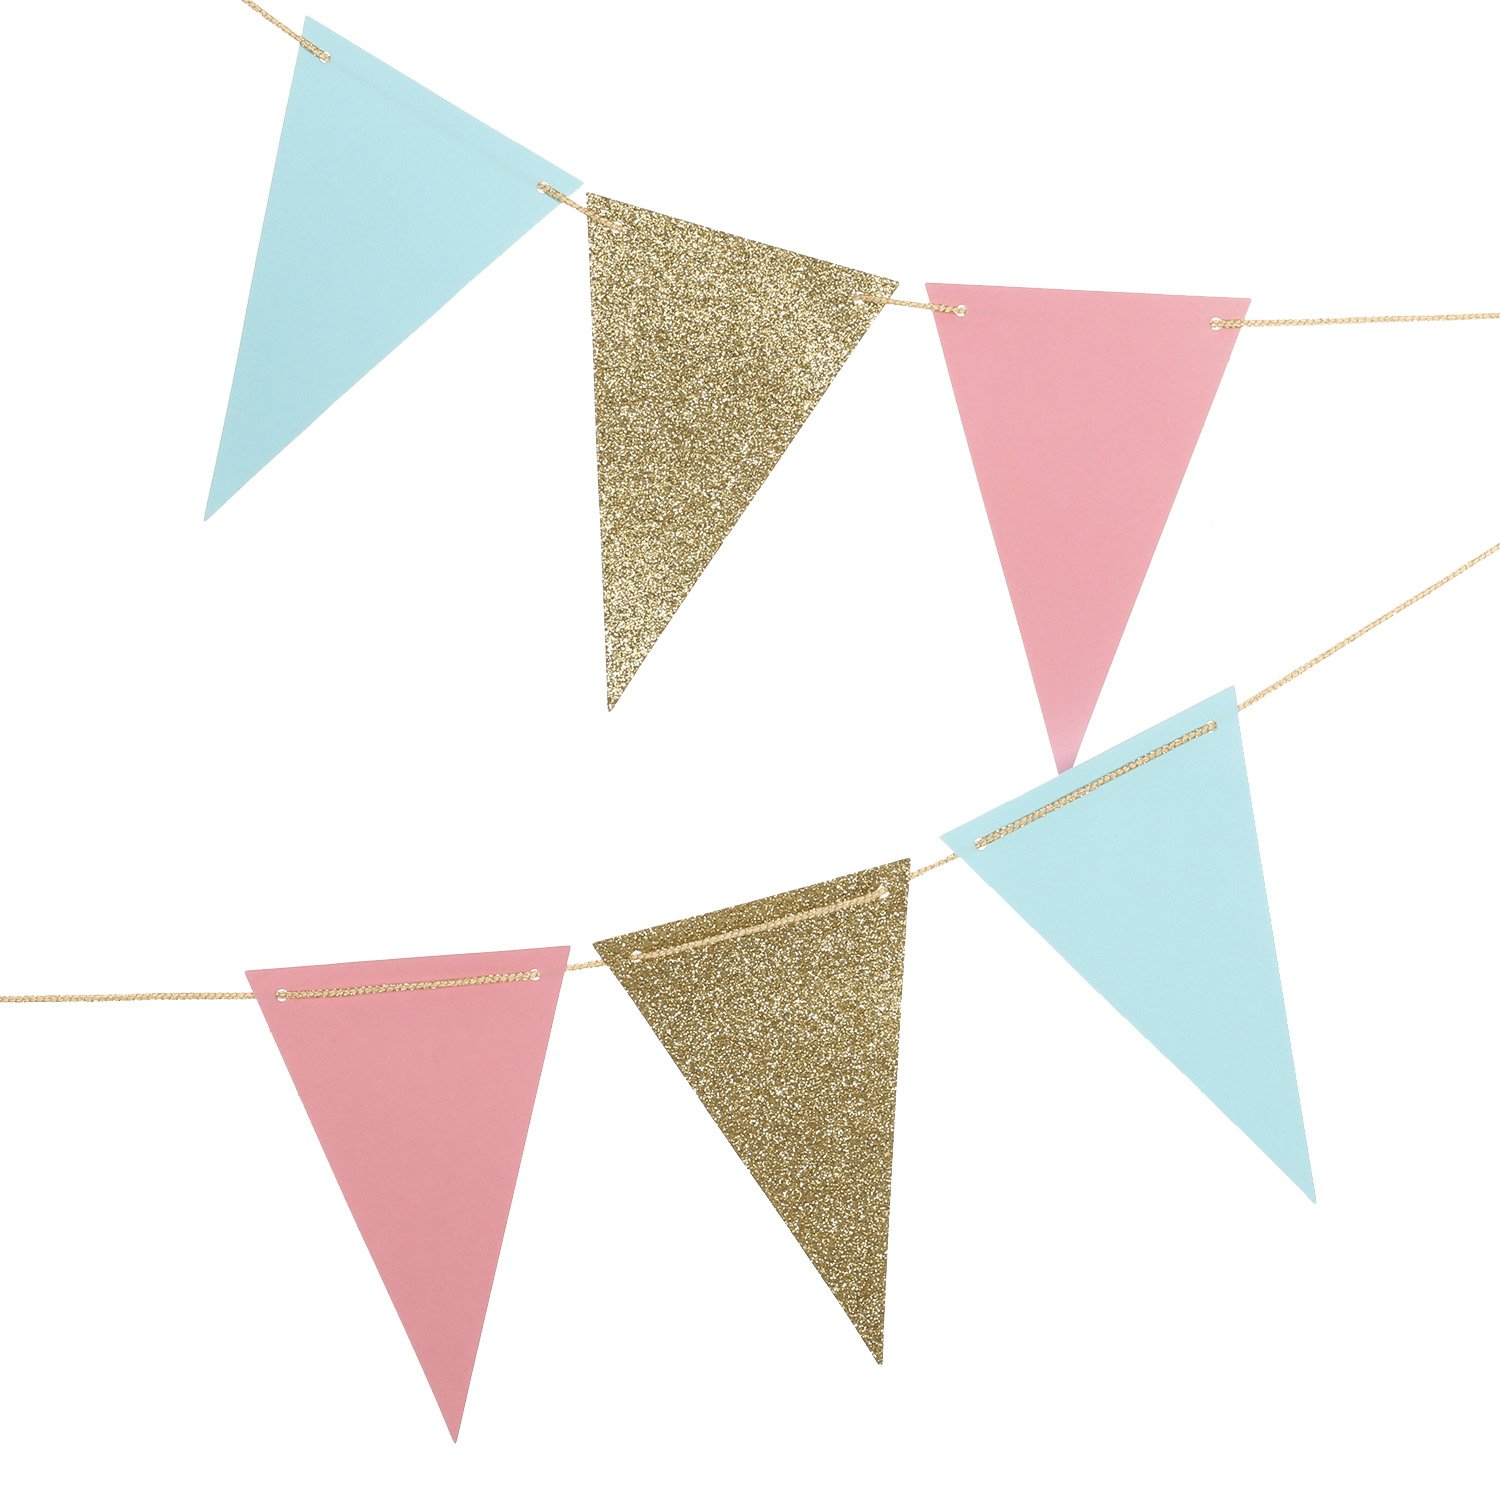 Lings Moment 10 Feet Paper Pennant Banner Triangle Garland Vintage